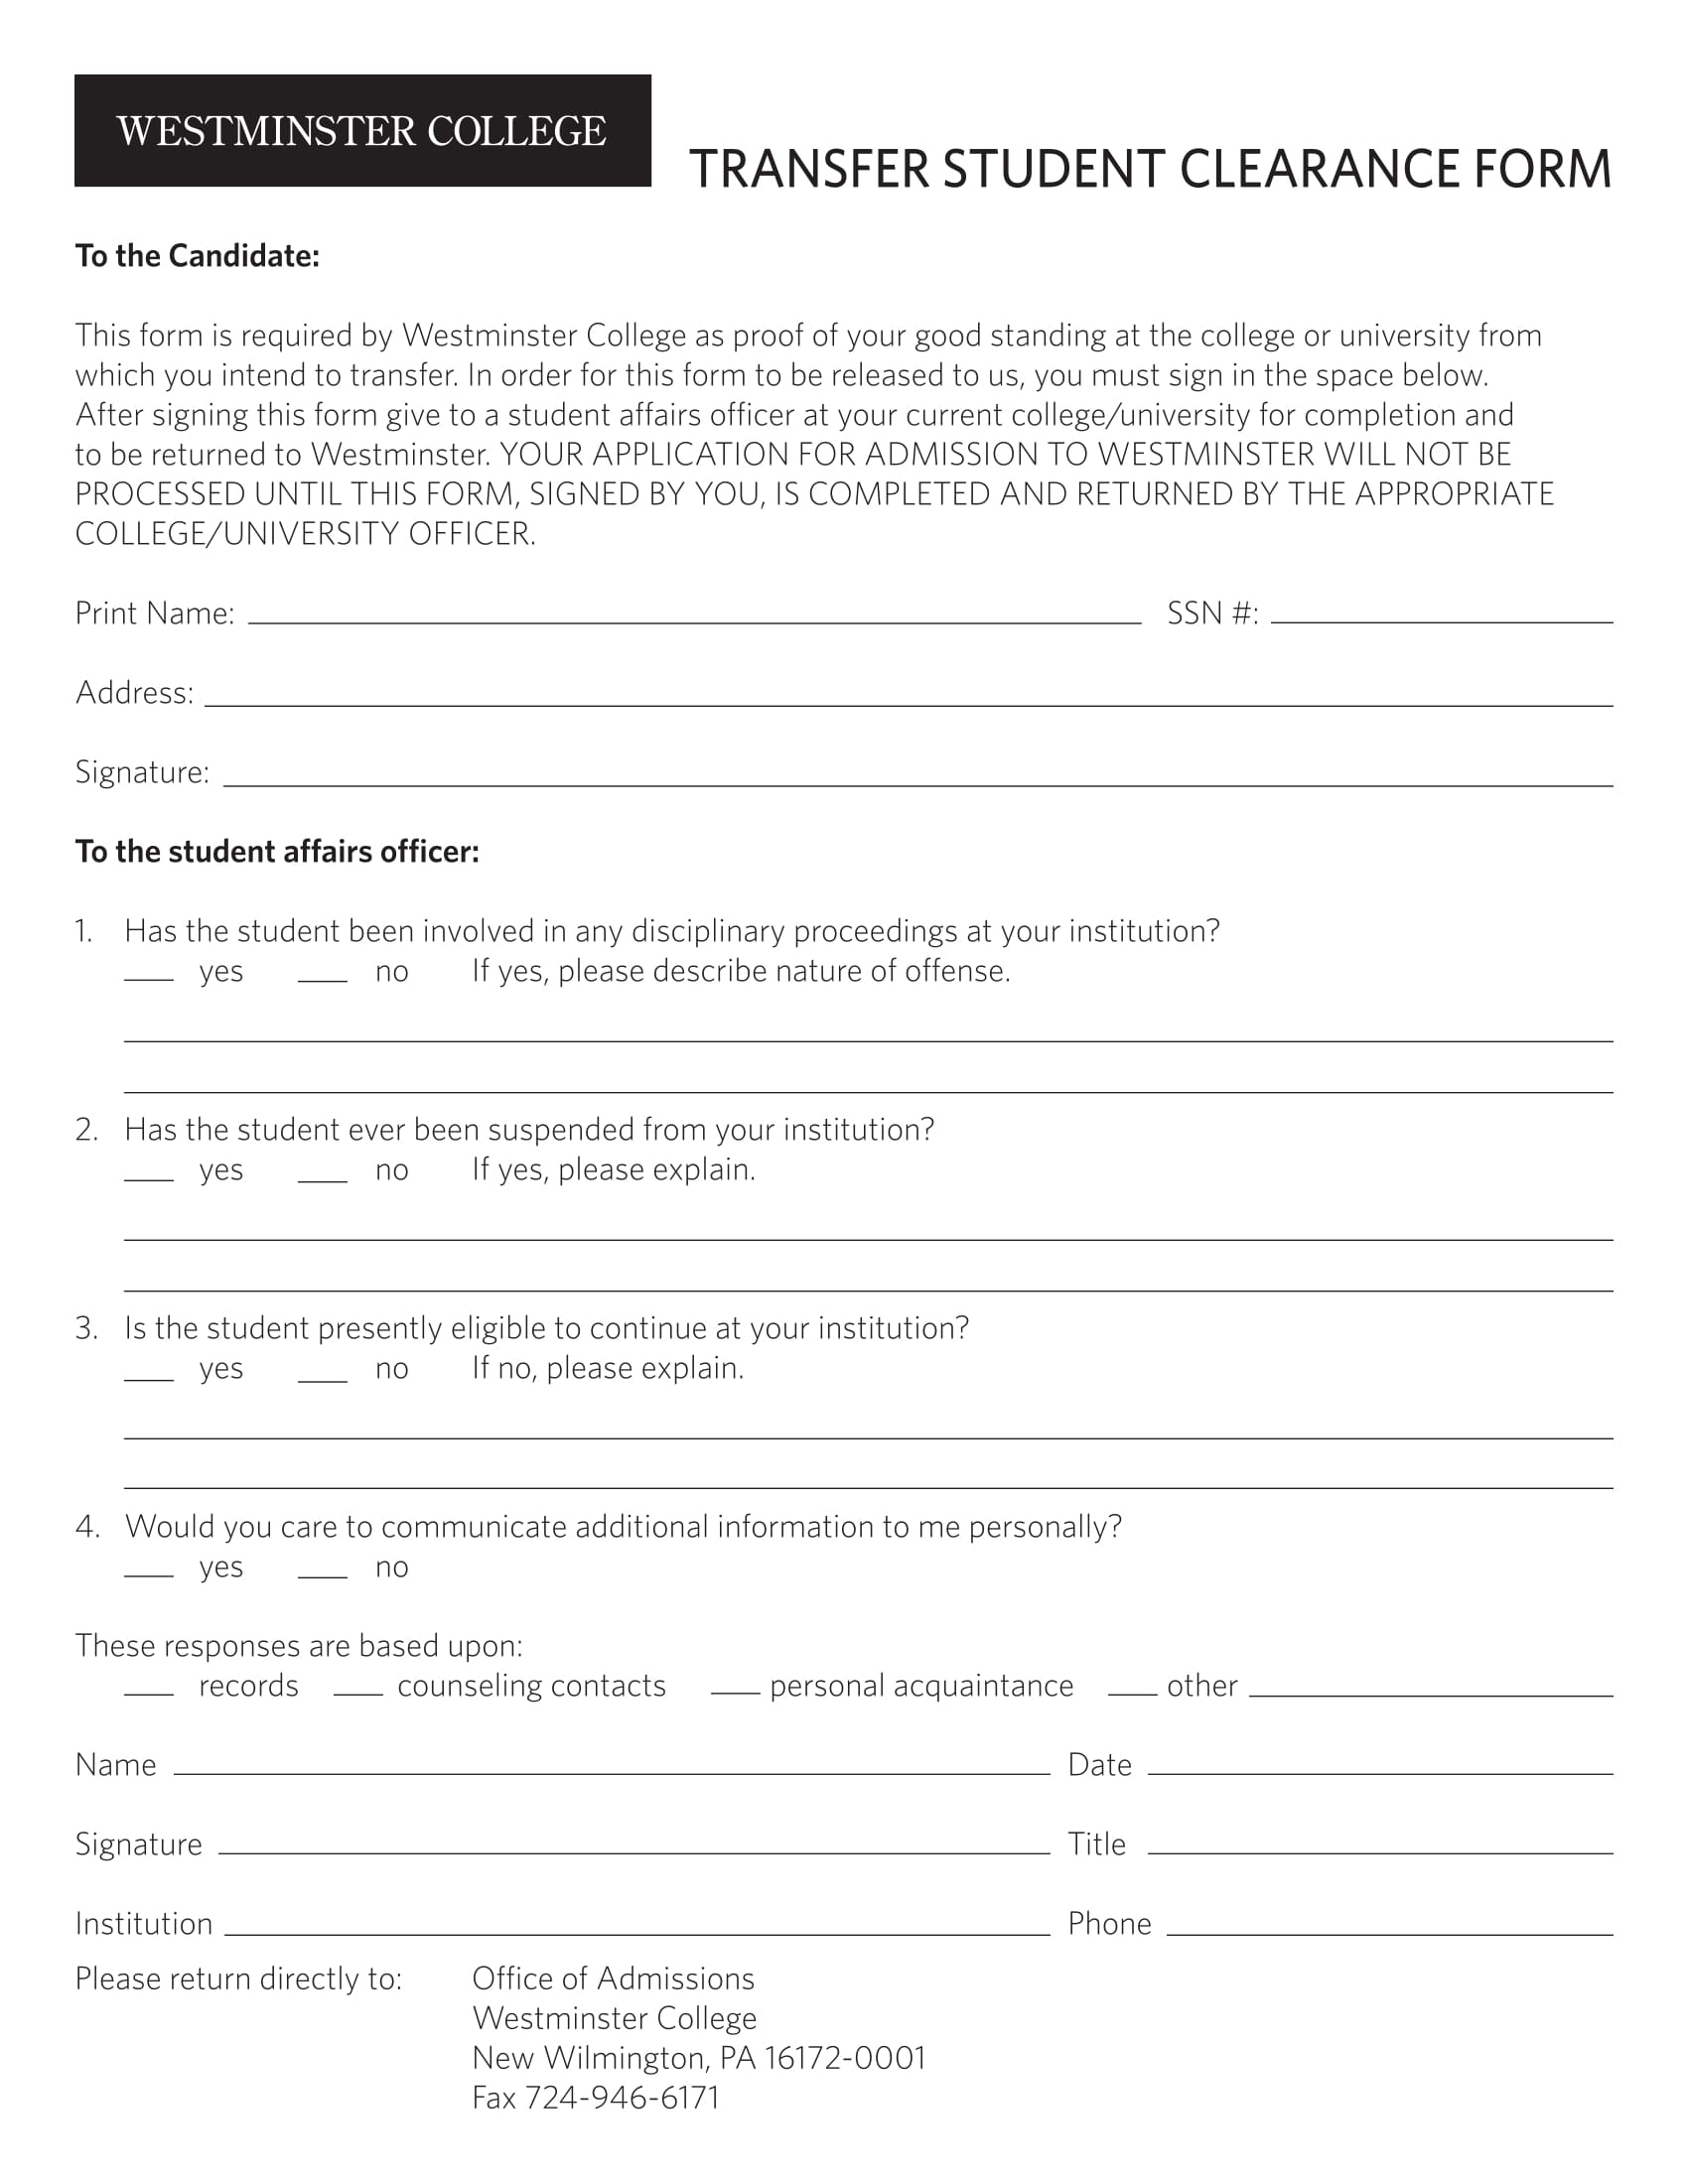 transfer student clearance form 1